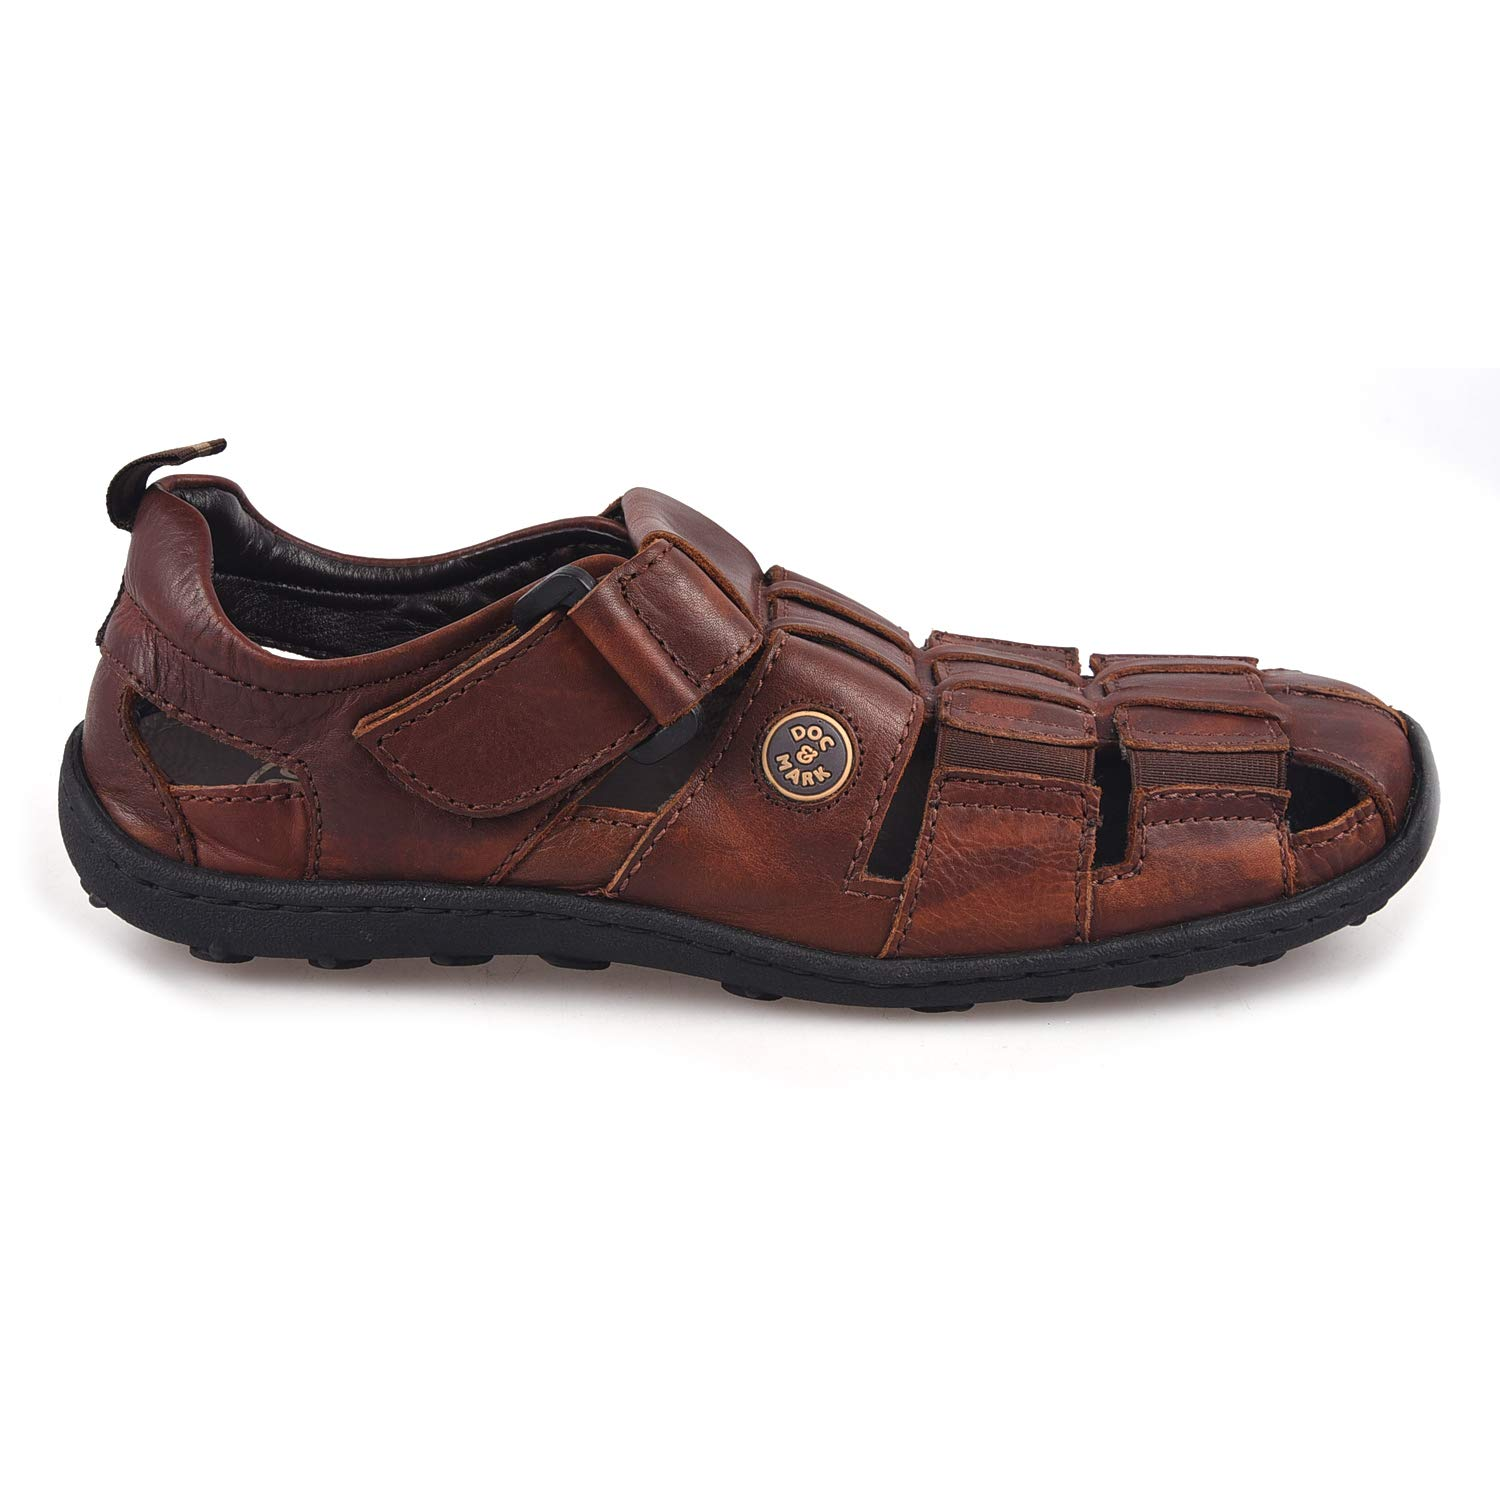 cec38ad7c37b DOC   MARK Brown Leather Velcro Sandals for Men  Buy Online at Low Prices  in India - Amazon.in